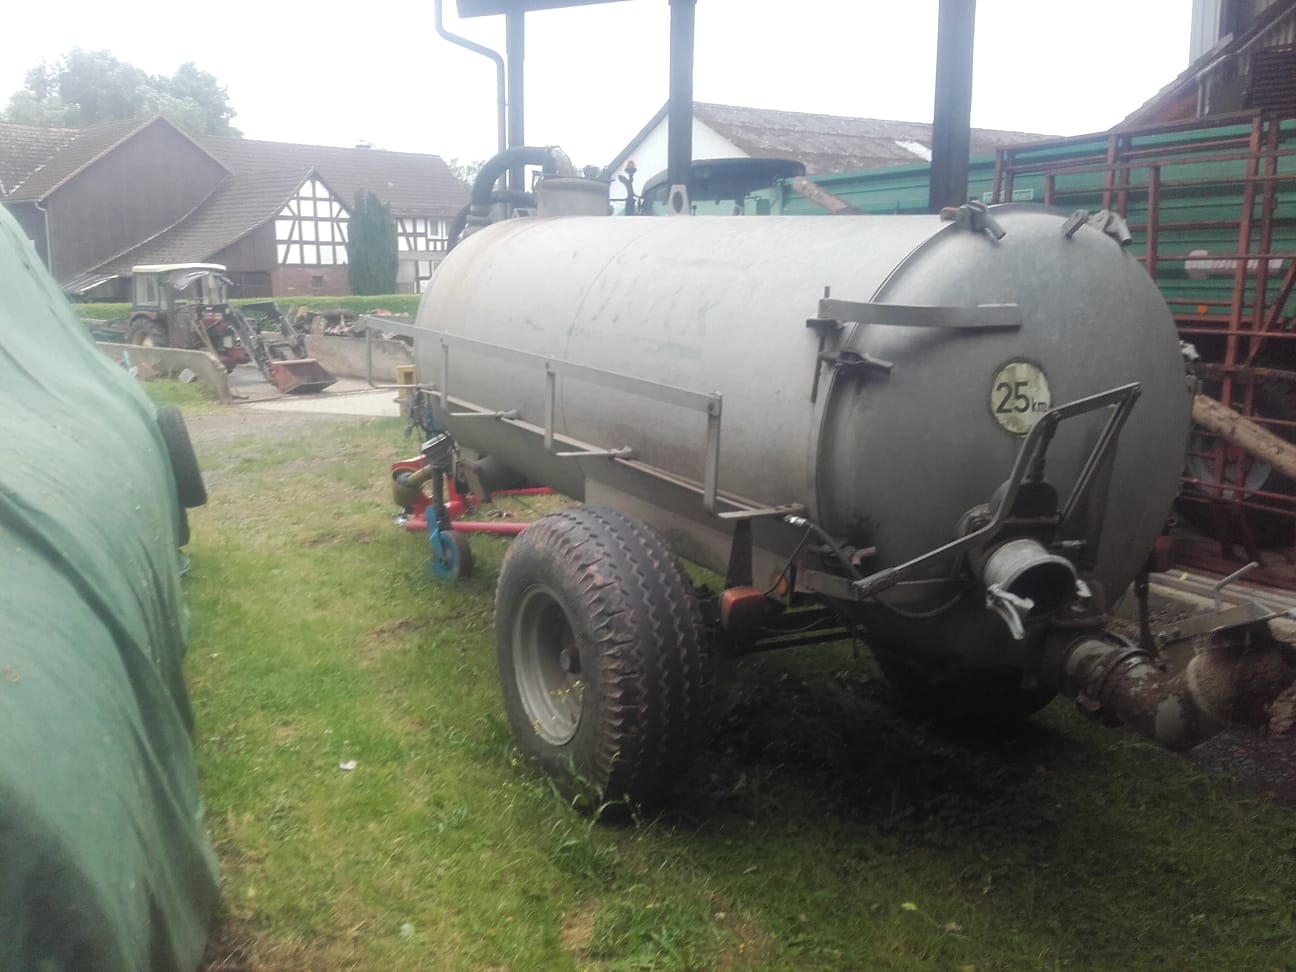 OT Wollmar Andreas Dönges 4000 Liter